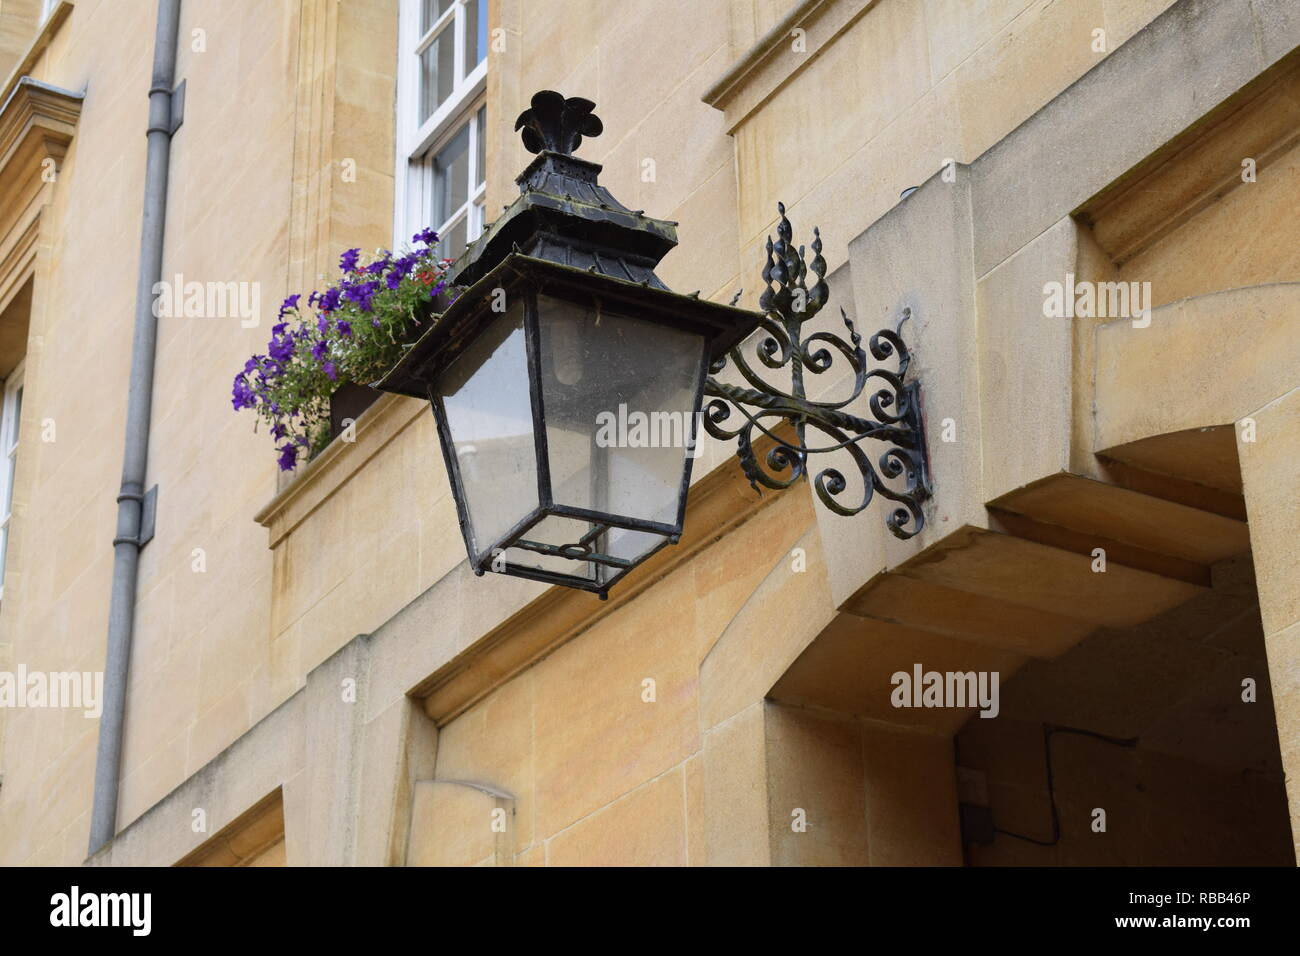 Lamp on the wall of Corpus Christi College Oxford - Stock Image